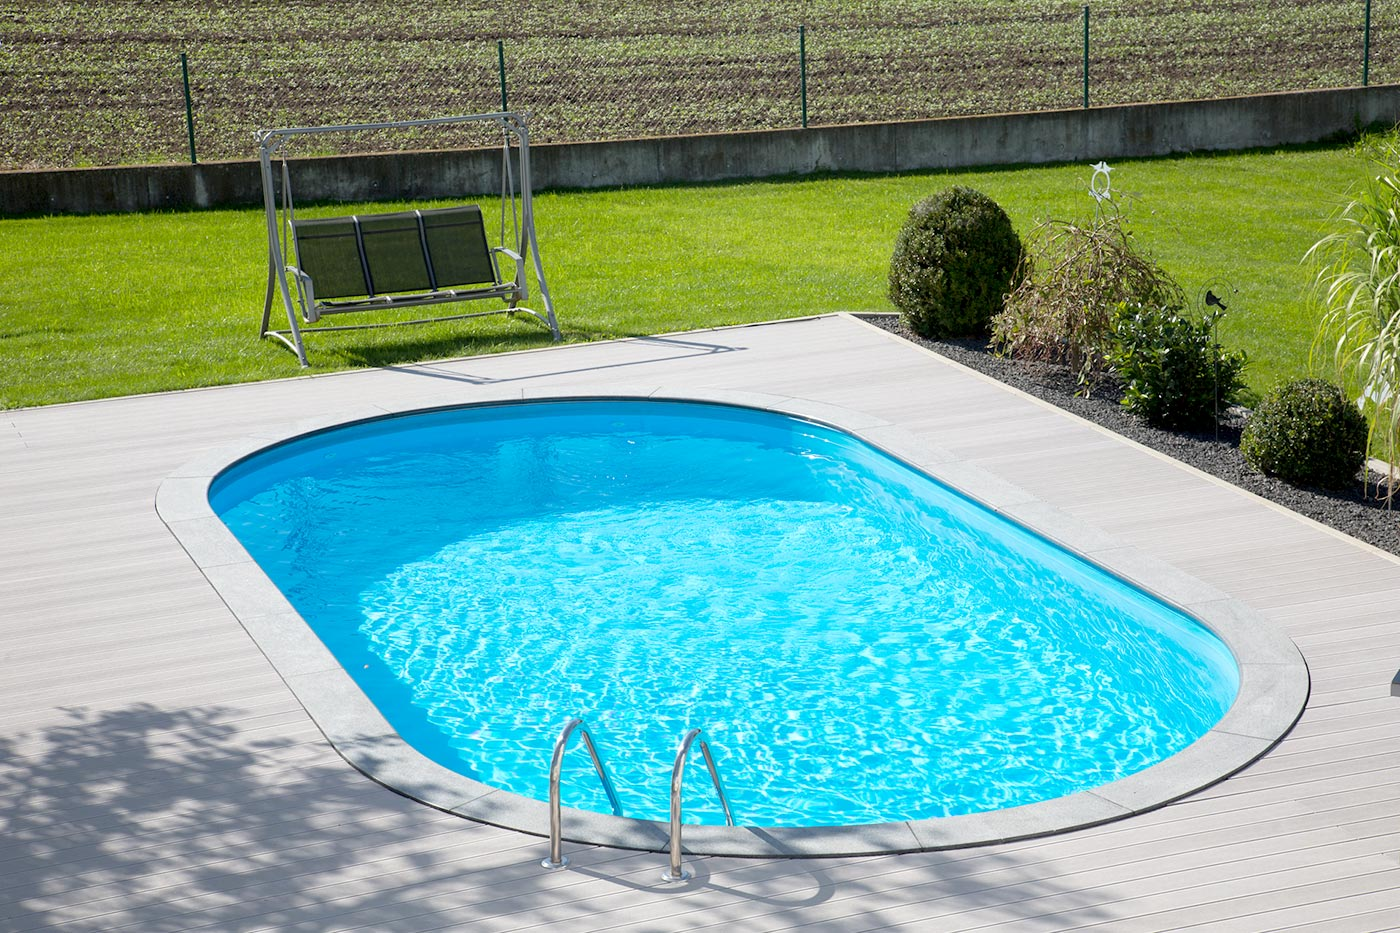 Pools stahlwandpools pool mit stahlwand - Swimming pool stahlwand ...